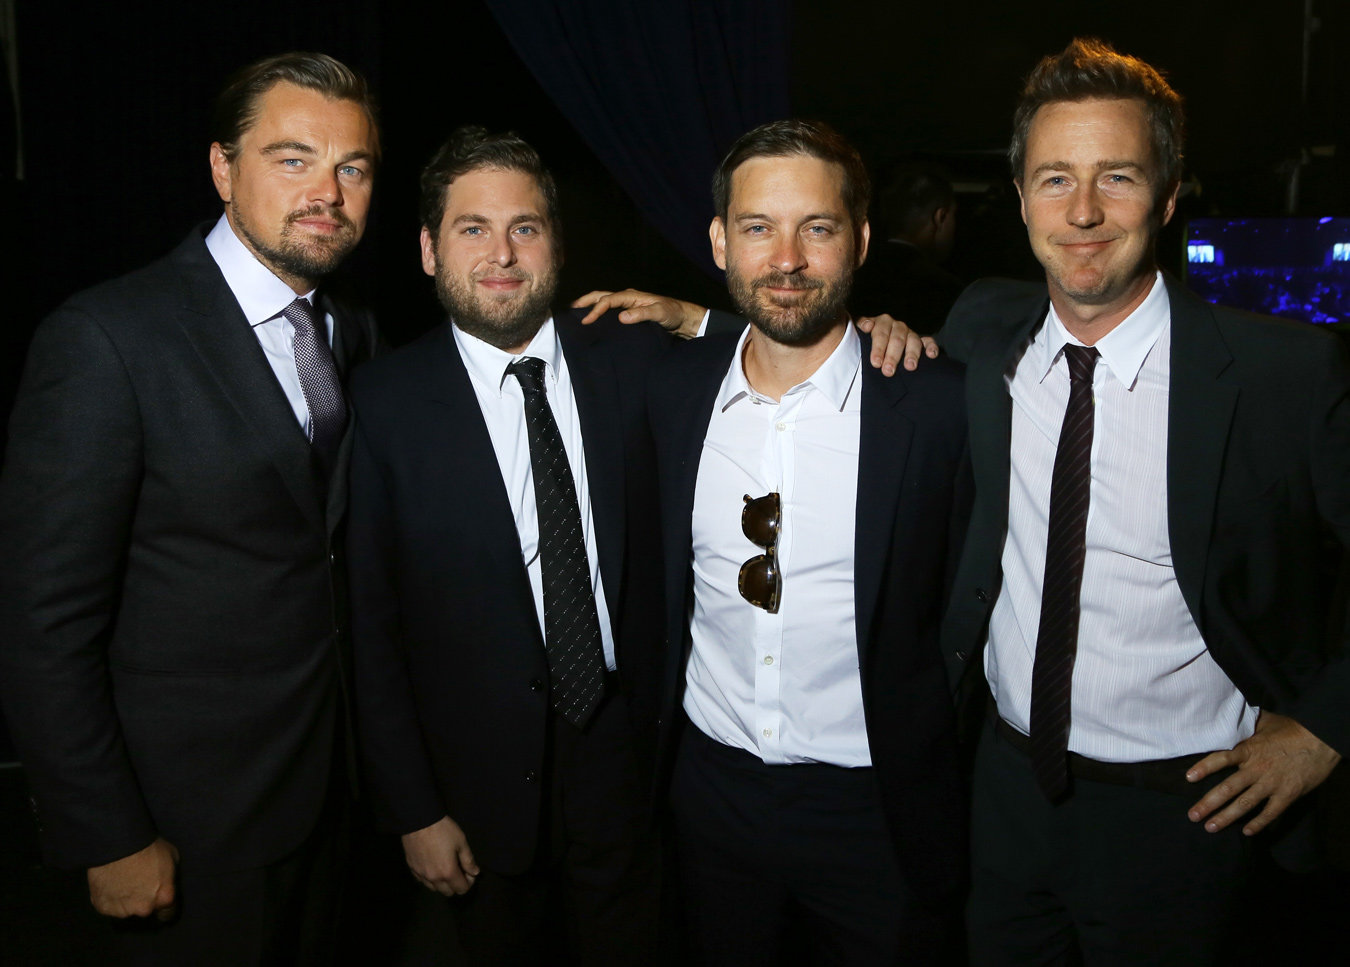 attend a Dinner & Auction during The Leonardo DiCaprio Foundation 3rd Annual Saint-Tropez Gala at Domaine Bertaud Belieu on July 20, 2016 in Saint-Tropez, France.